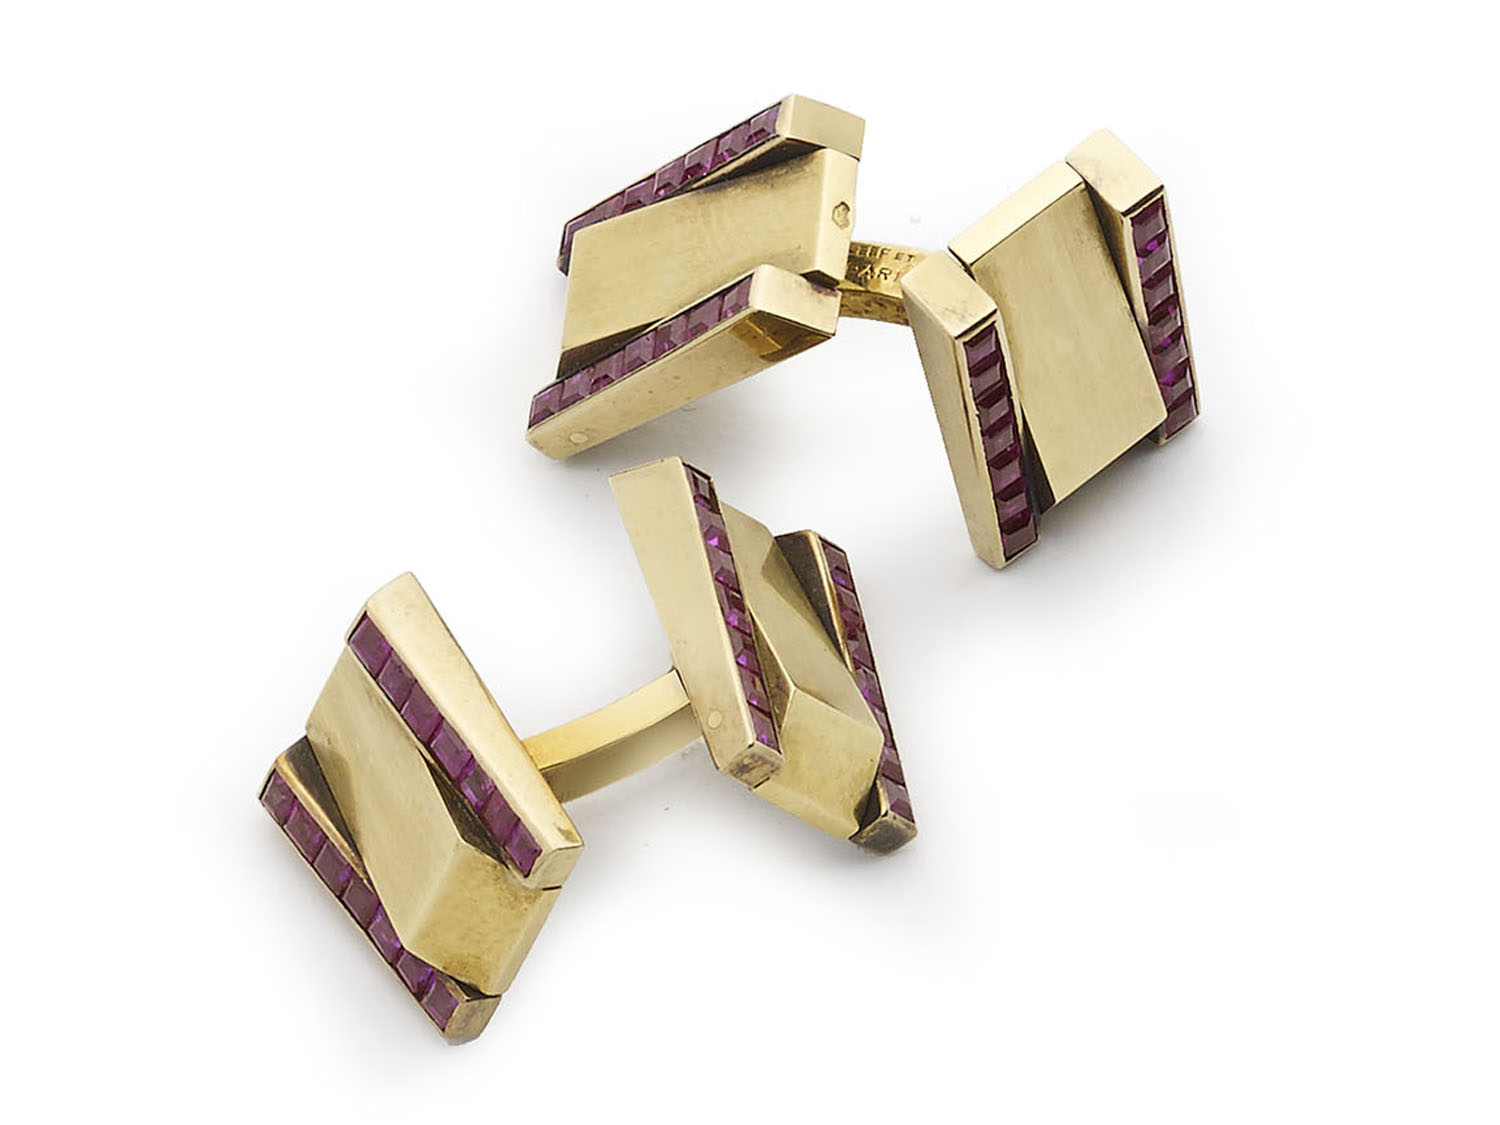 Van Cleef and Arpels ruby cufflinks 1940's gold retro